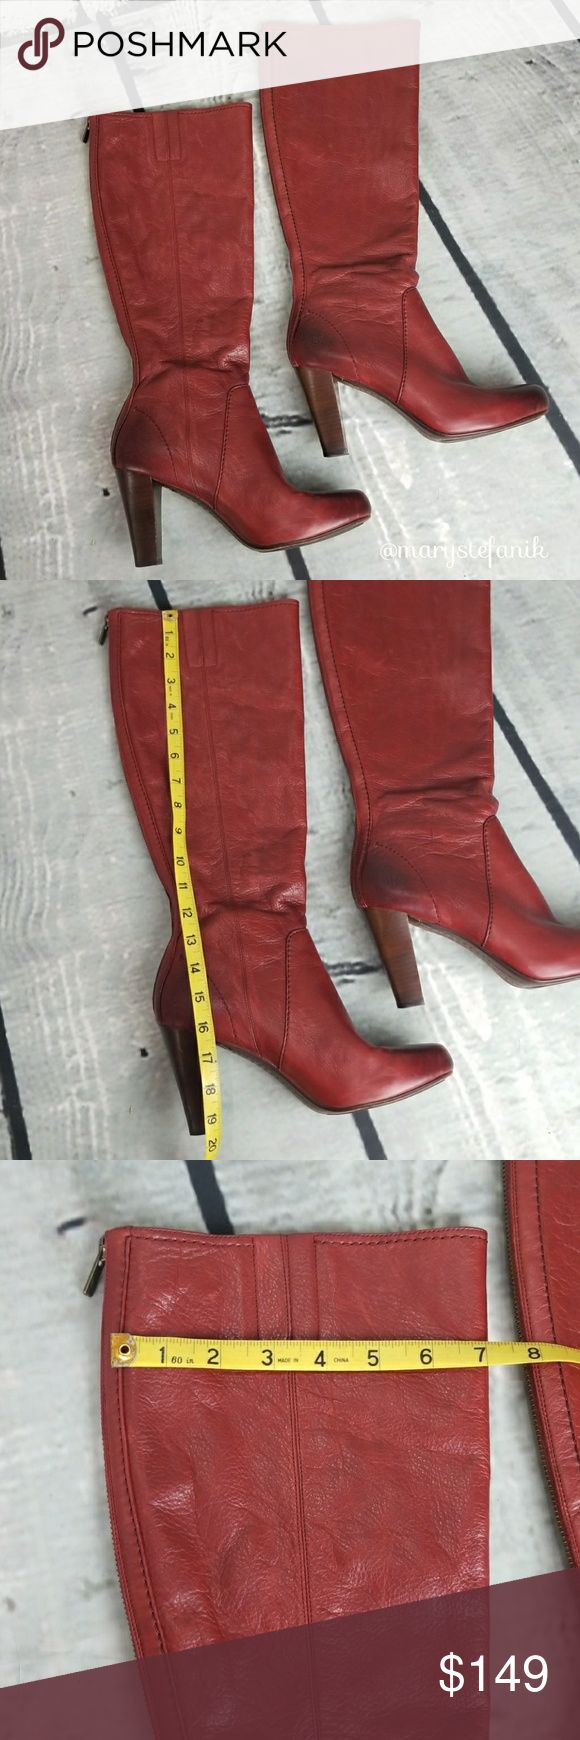 Frye Red Marissa Back Zip Tall Heeled Boots size 9 Frye Red Marissa Back Zip Tall Heeled Boots size 9 in great used condition. Some signs of use including minor marks on exterior and marks on the interior. Some wear to the bottom including scuffing to the heel. Zippers are functional. Gorgeous boots and beautiful color!  Please let me know if you have any questions. Happy Poshing! Frye Shoes Heeled Boots